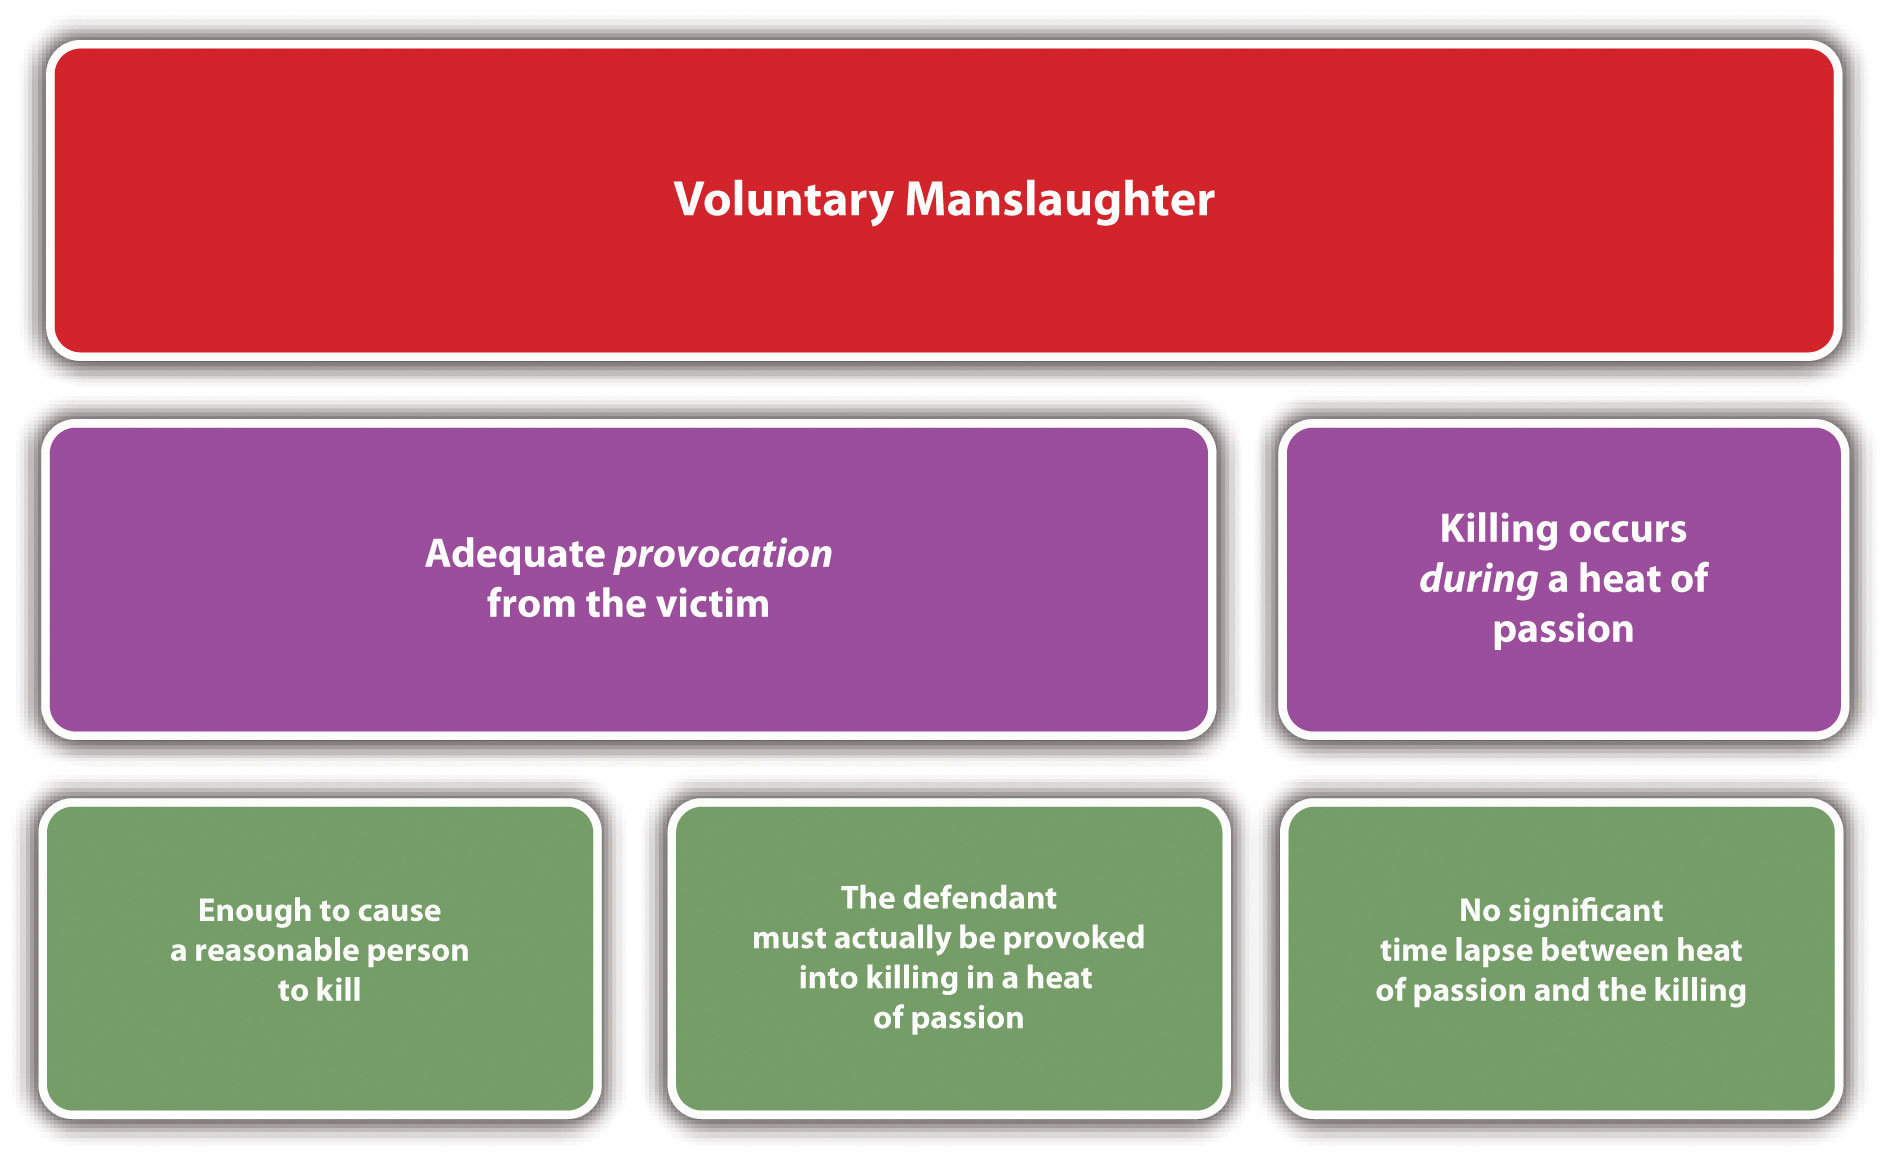 Involuntary Manslaughter Overview